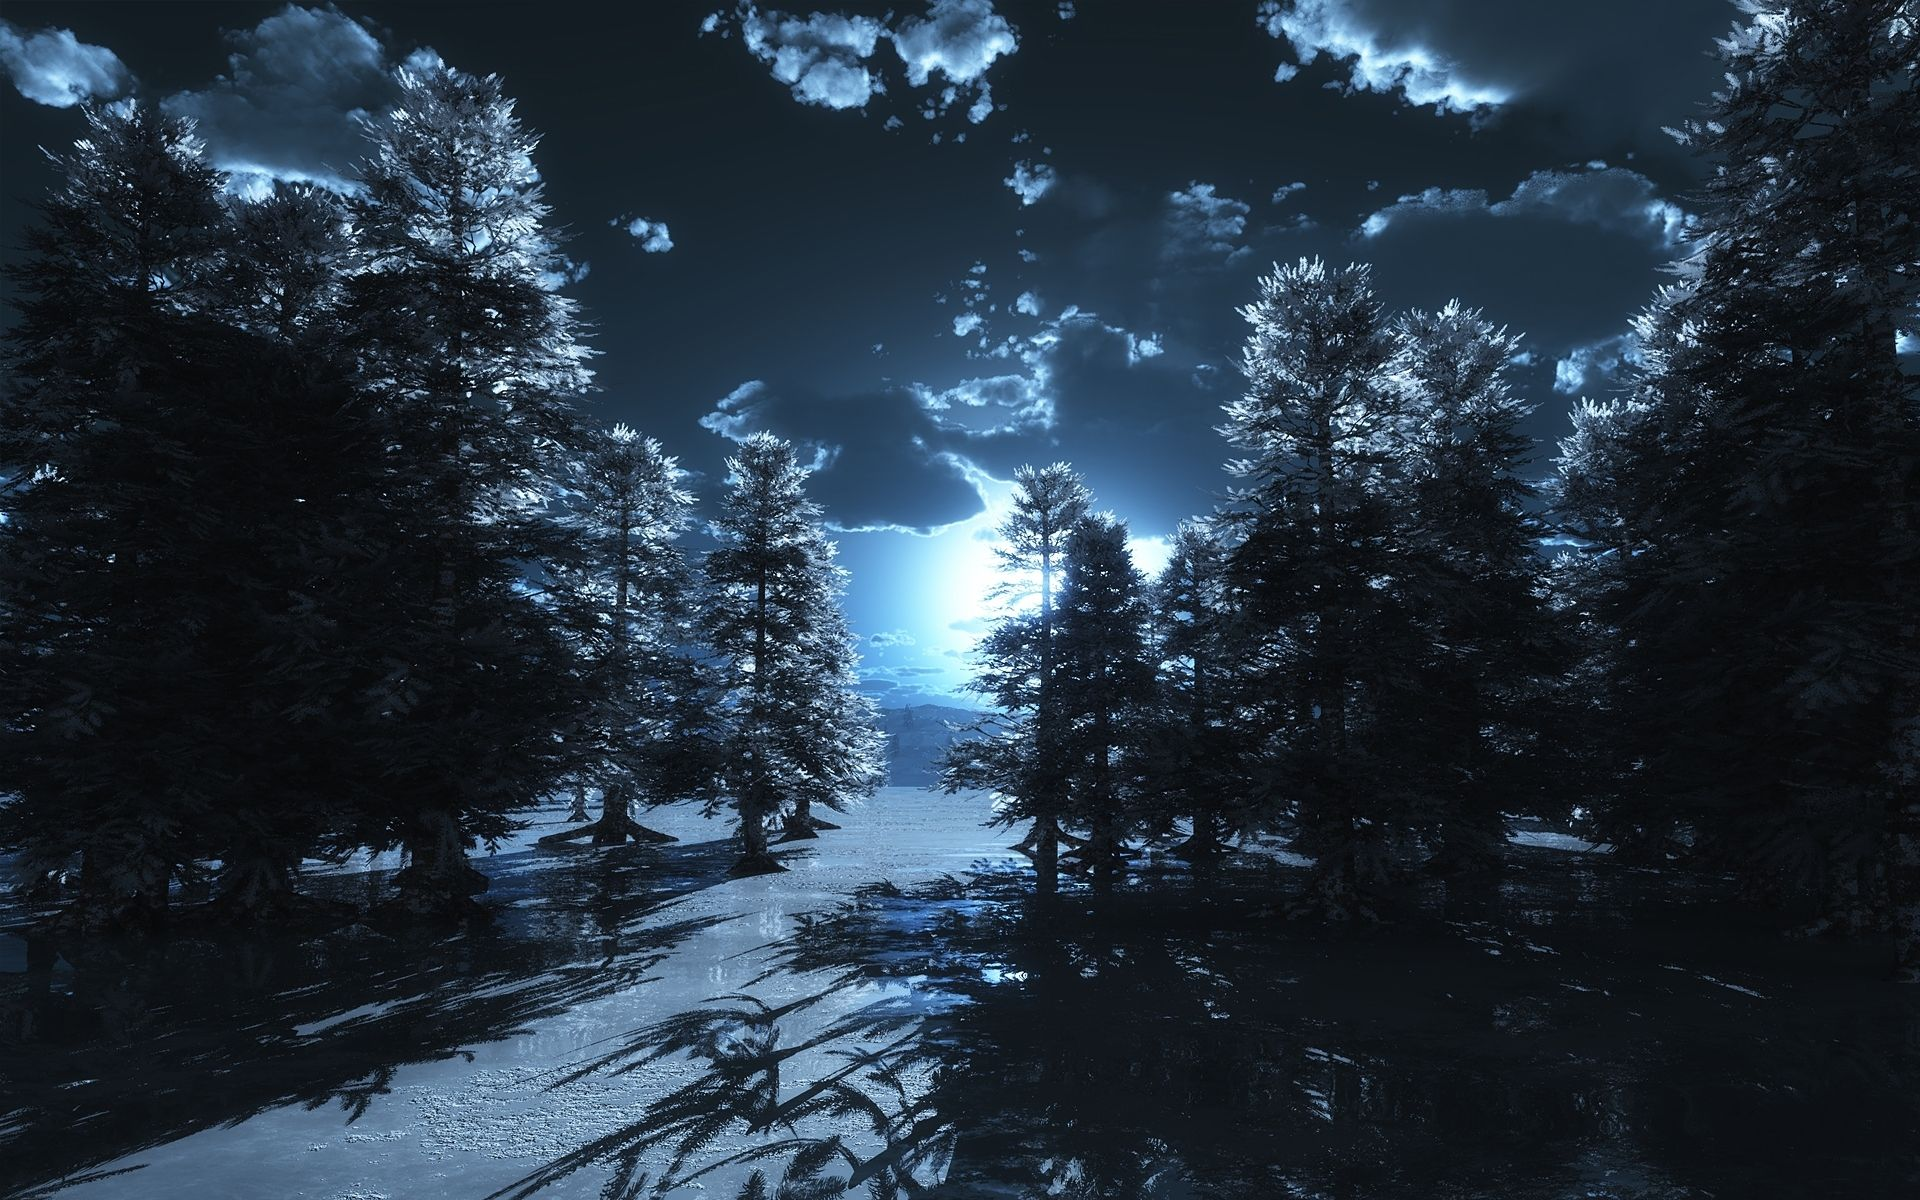 Dark Forest Moon HD Images Wallpaper | MoonGazer ...